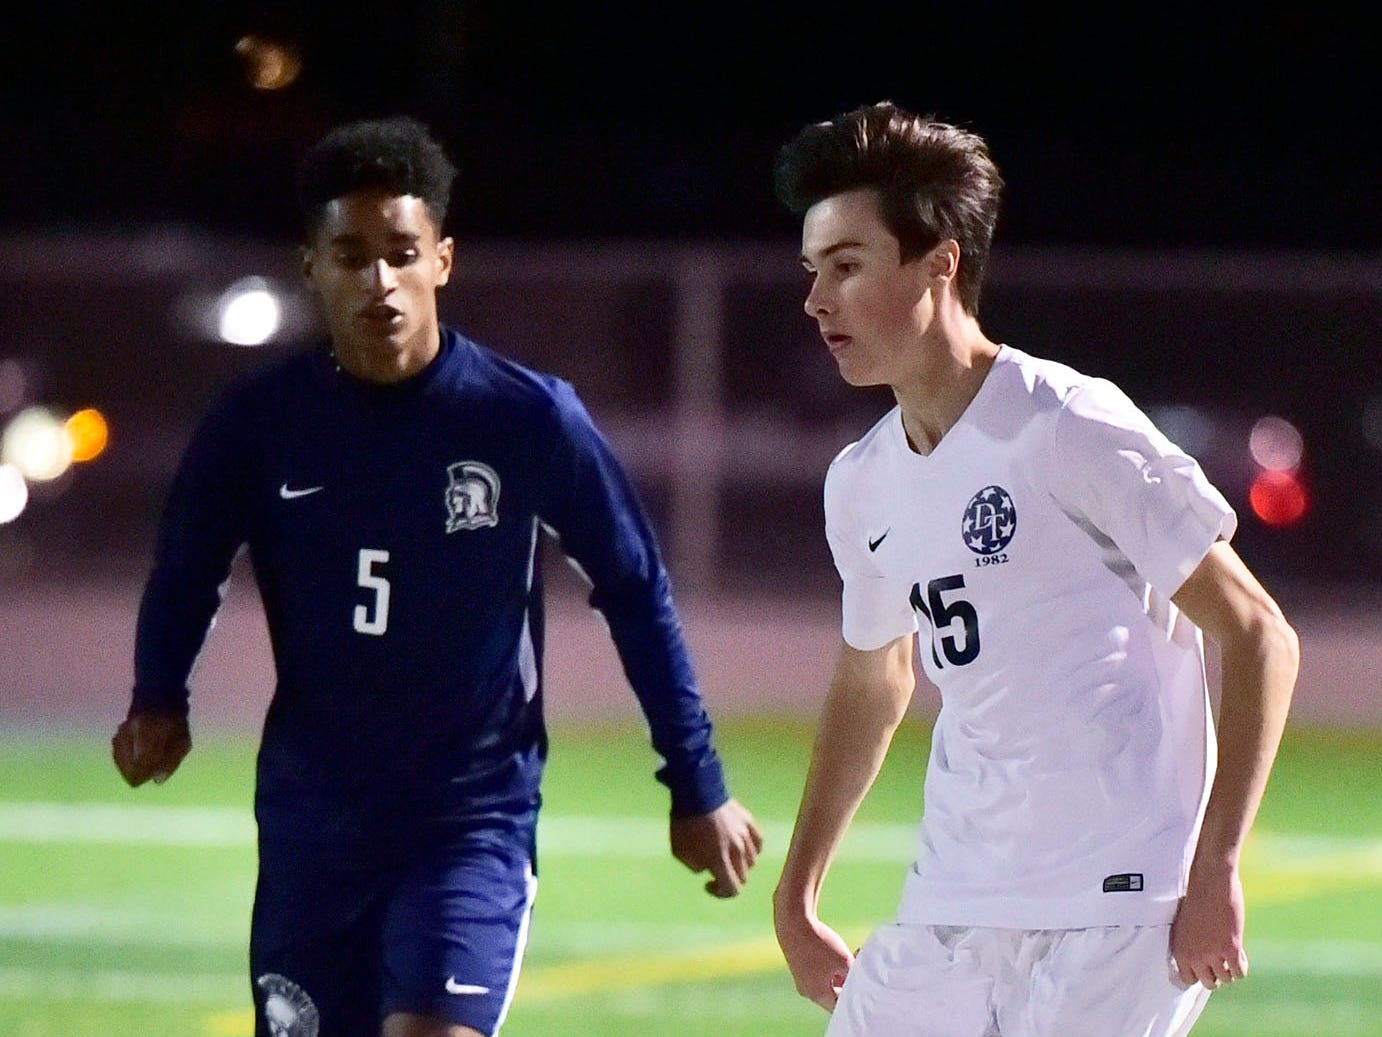 Mike Shirey (15) of Dallastown controls the ball in front of Chamberbsurg's Mikey Williams. Chambersburg lost a first round D3 soccer match to Dallastown 2-1 on Tuesday, Oct. 23, 2018.